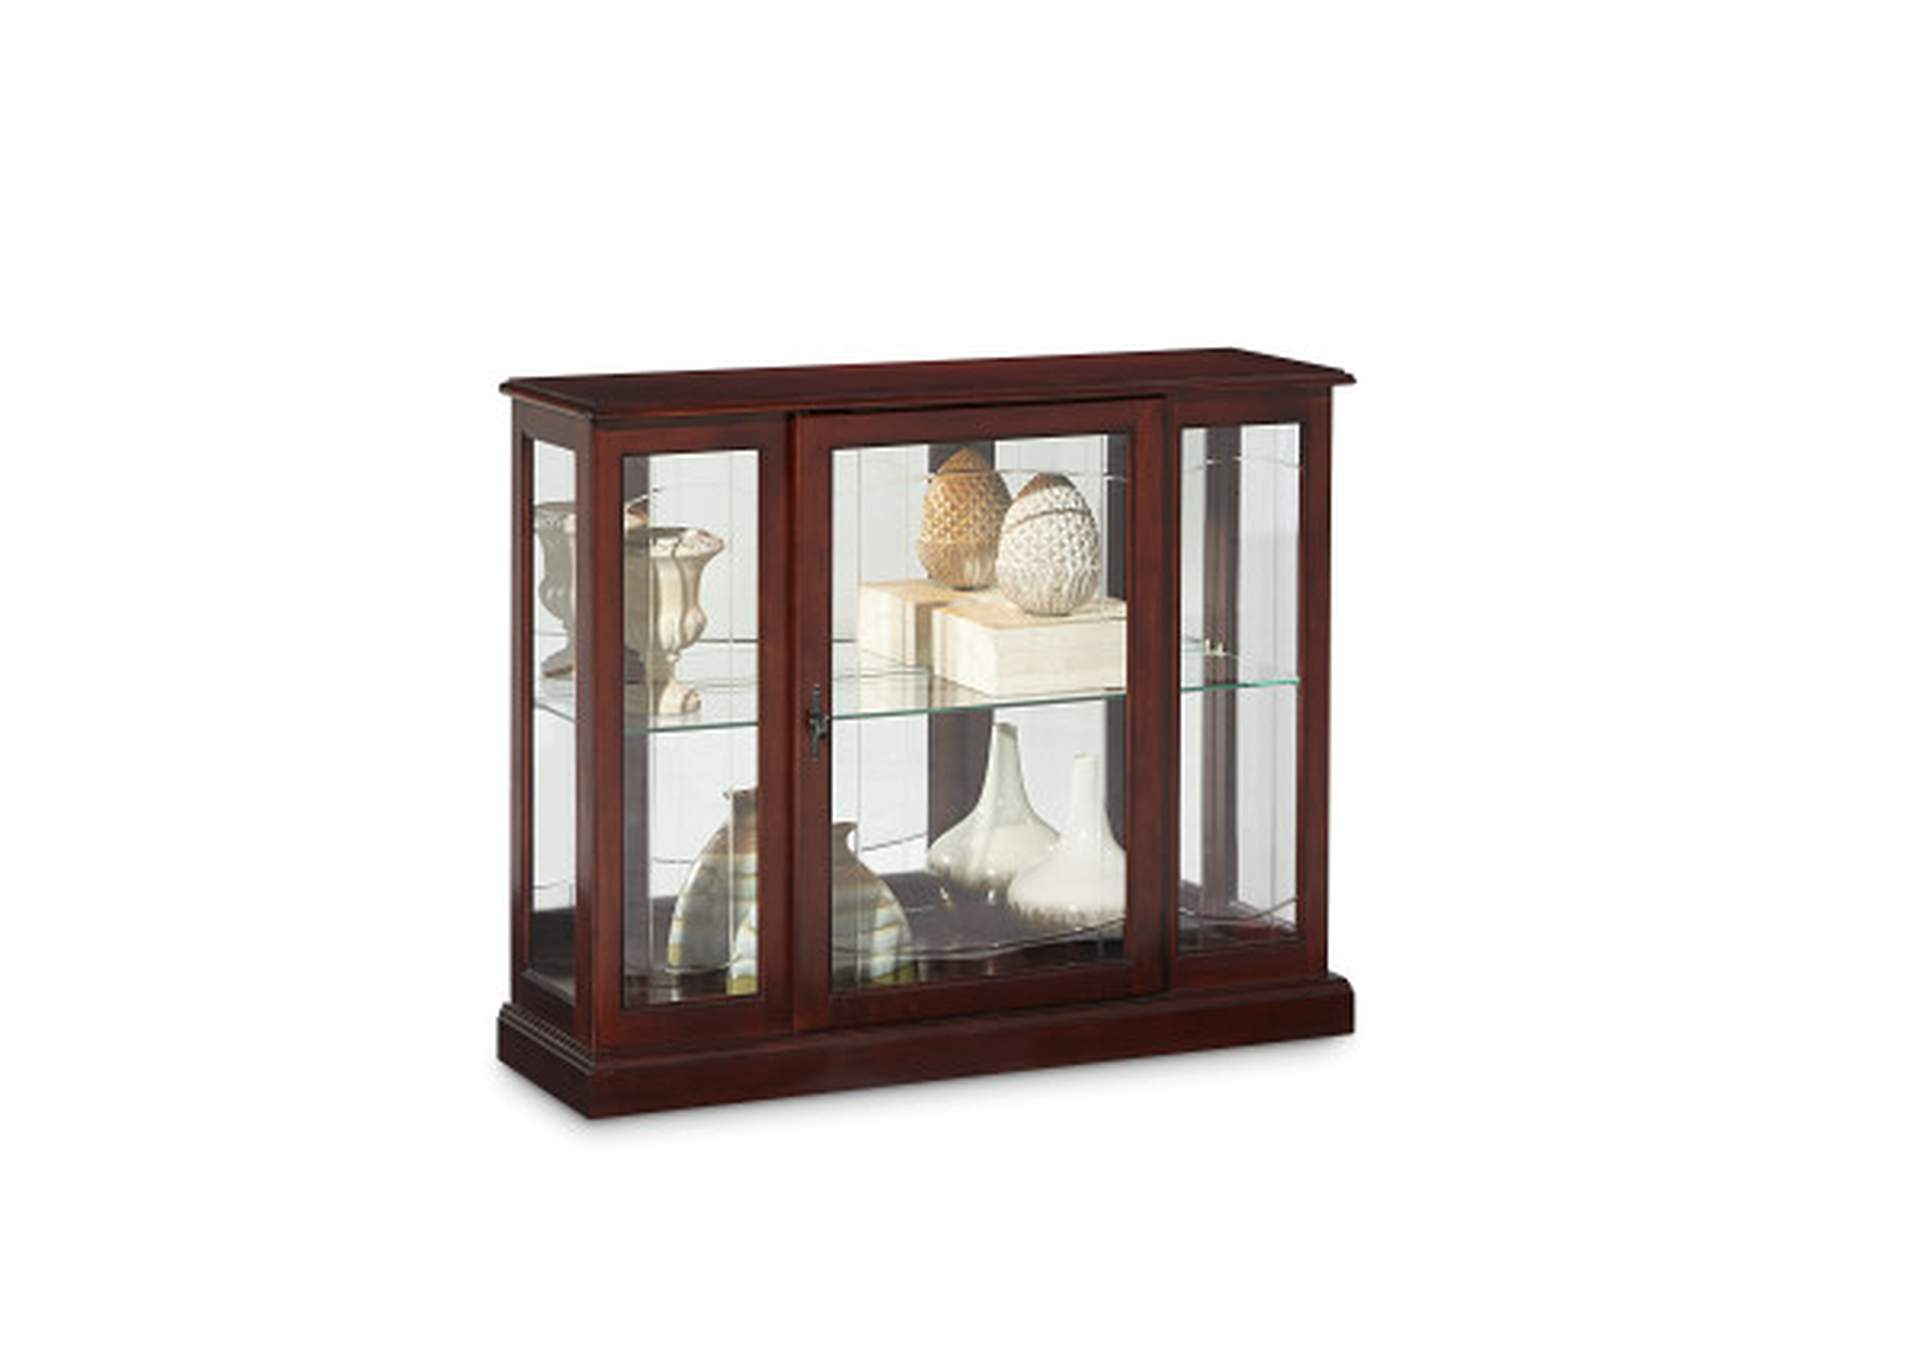 Lighted 1 Shelf Console Display Cabinet in Cherry Brown,Pulaski Furniture